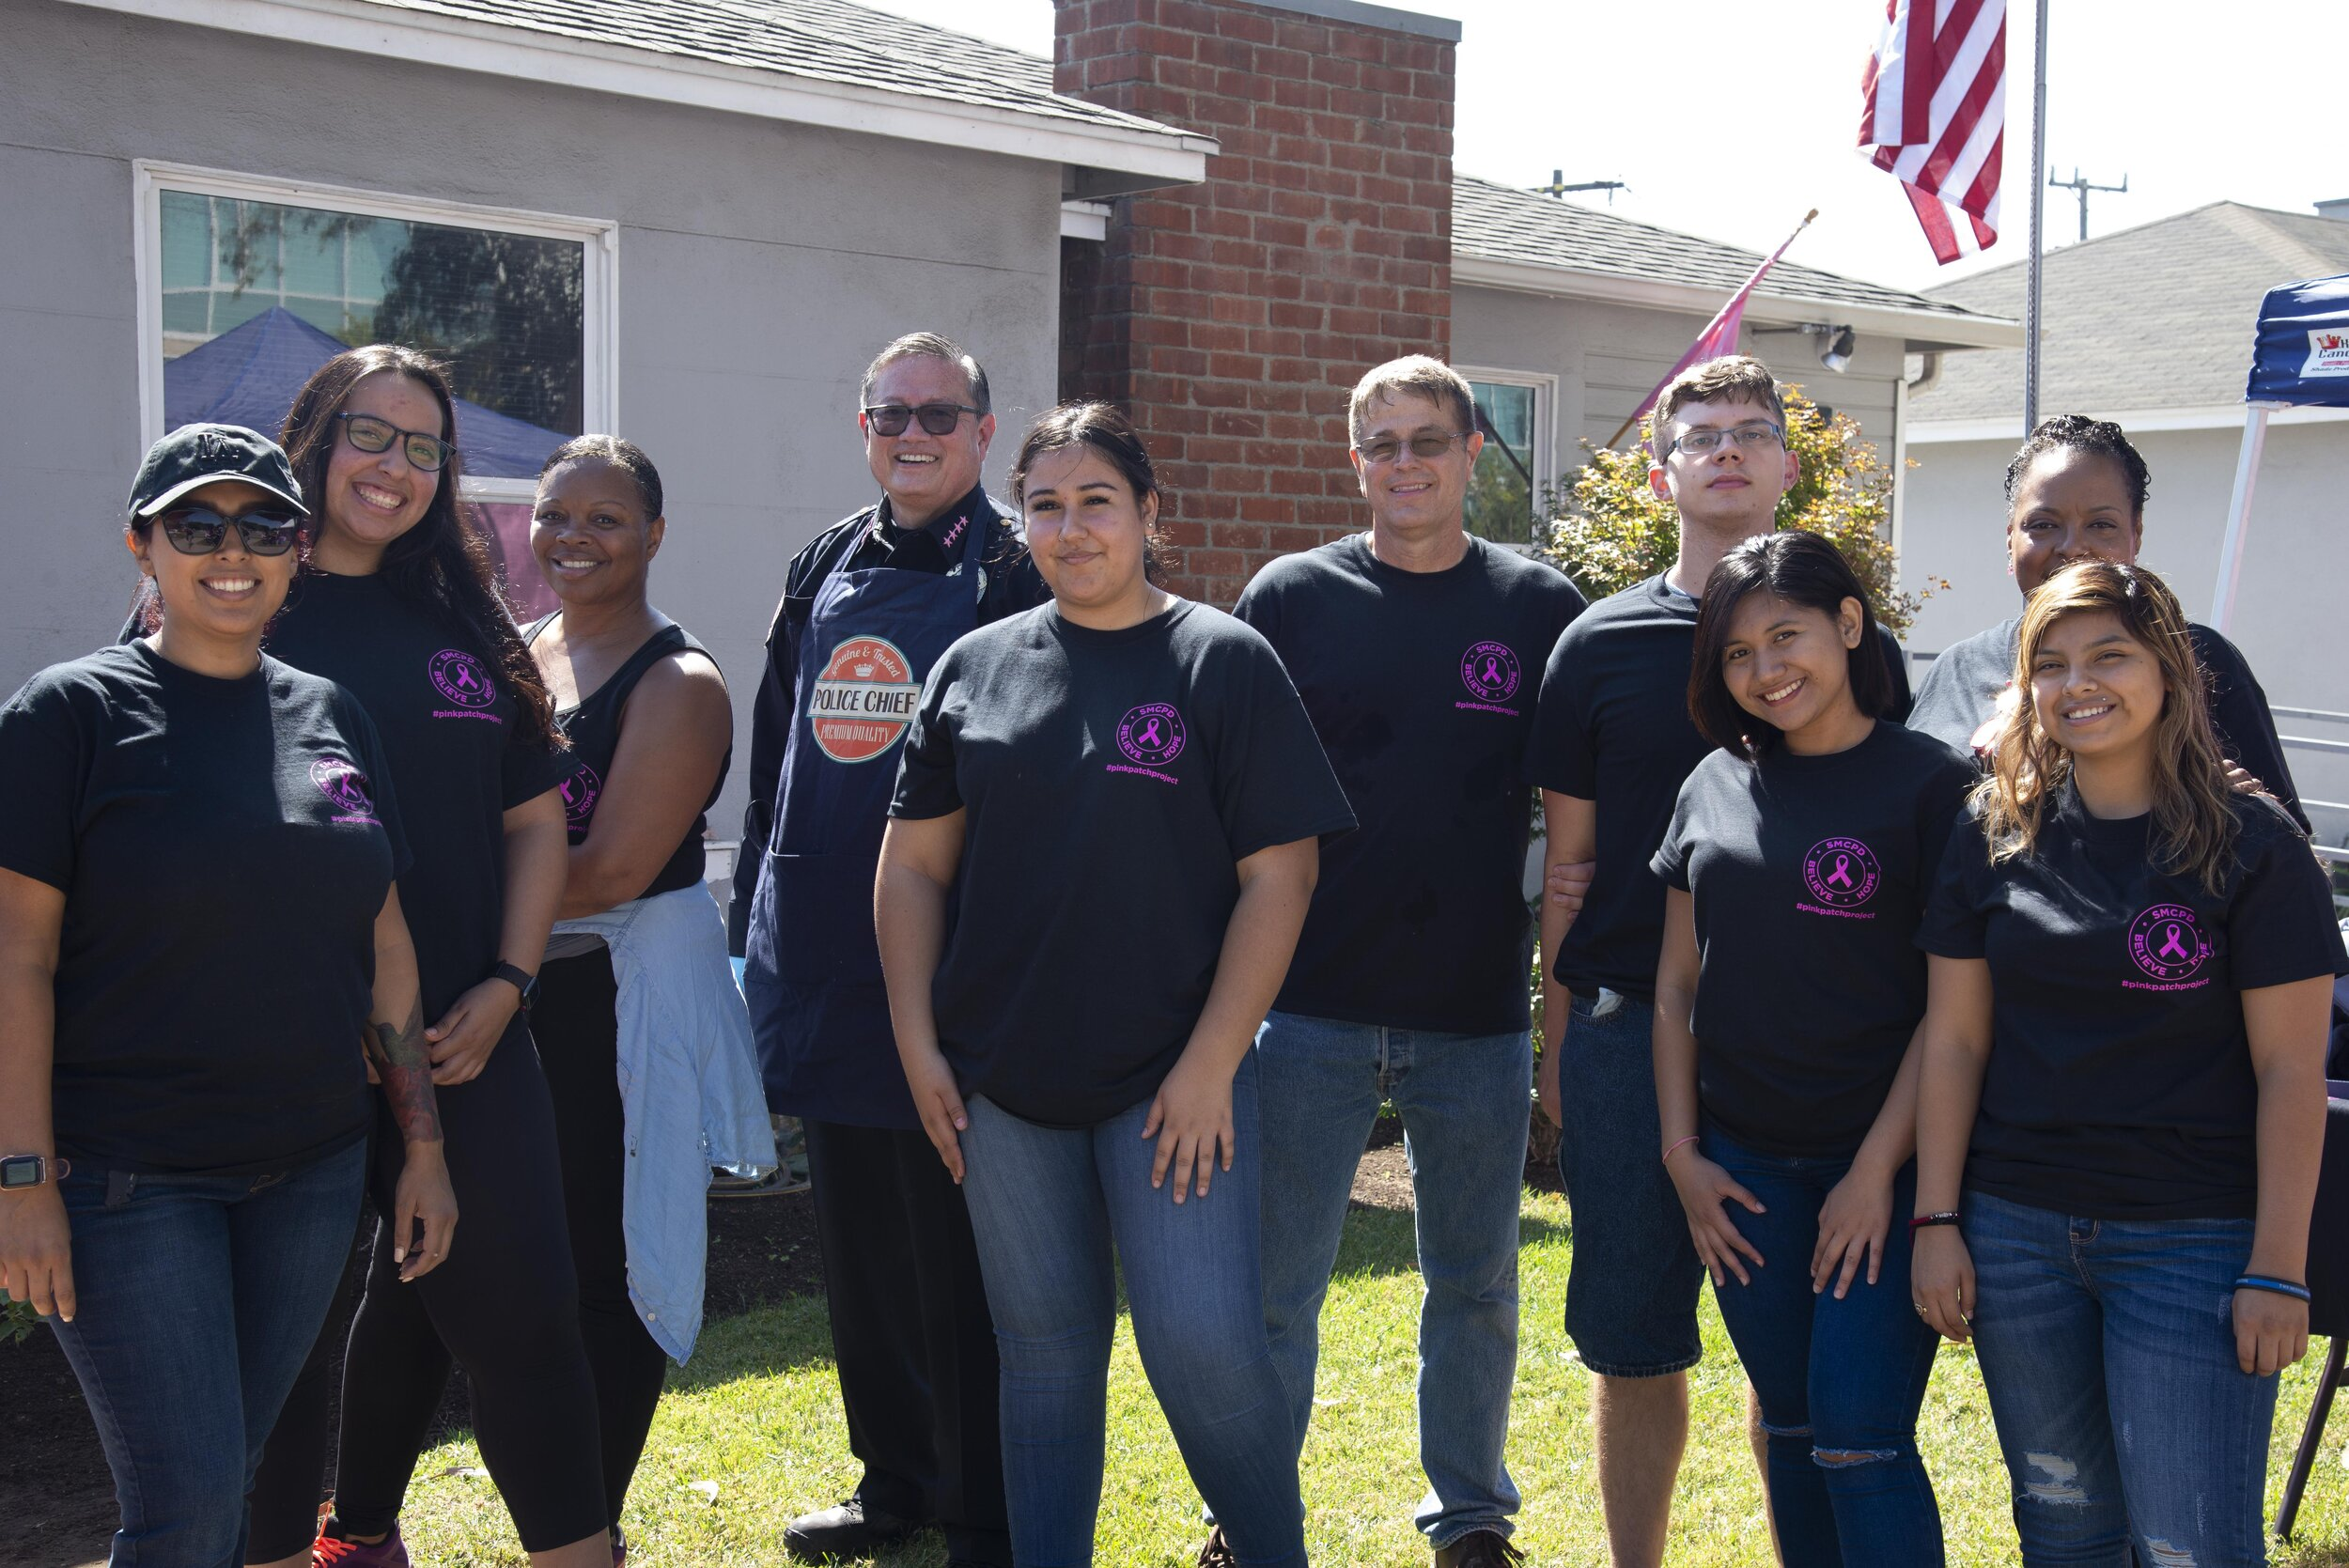 SMC Chief of Police, Johnnie Adams (fourth from left), along with the SMC Police Department staff and cadets, hosted the barbecue.  (Rachel O'Brien/The Corsair)